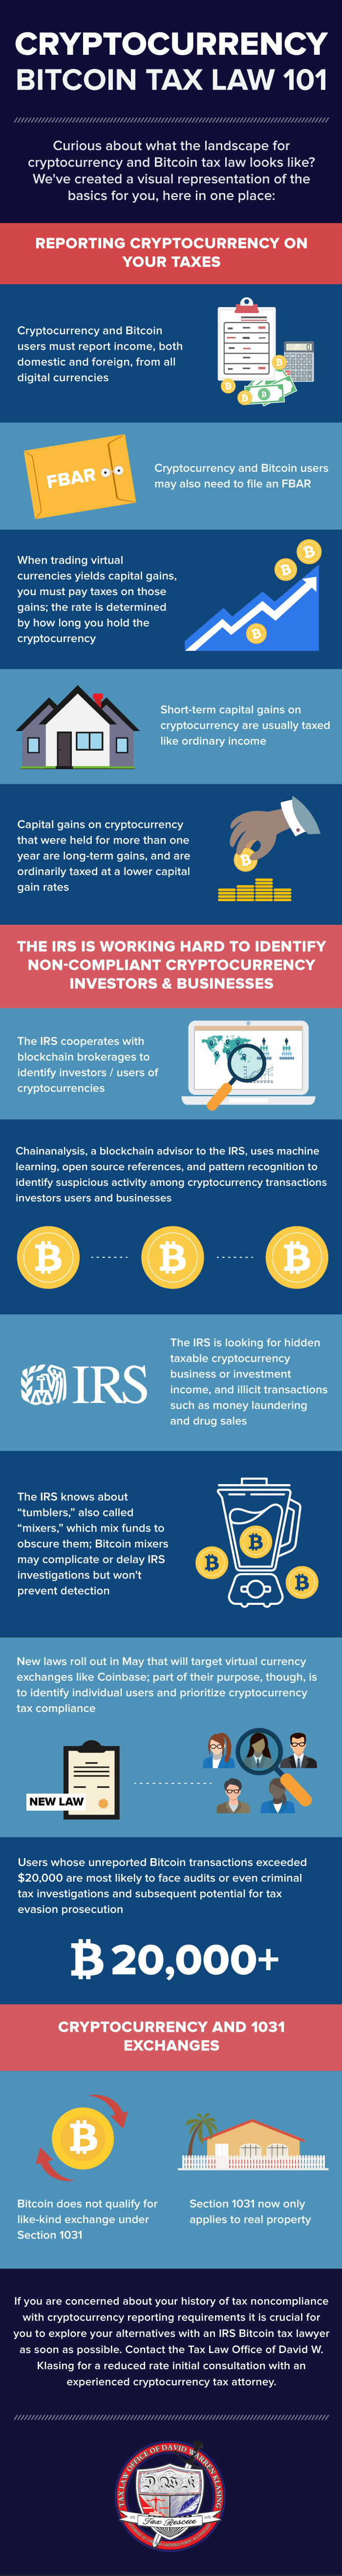 Cryptocurrency Bitcoin Tax Law Infographic